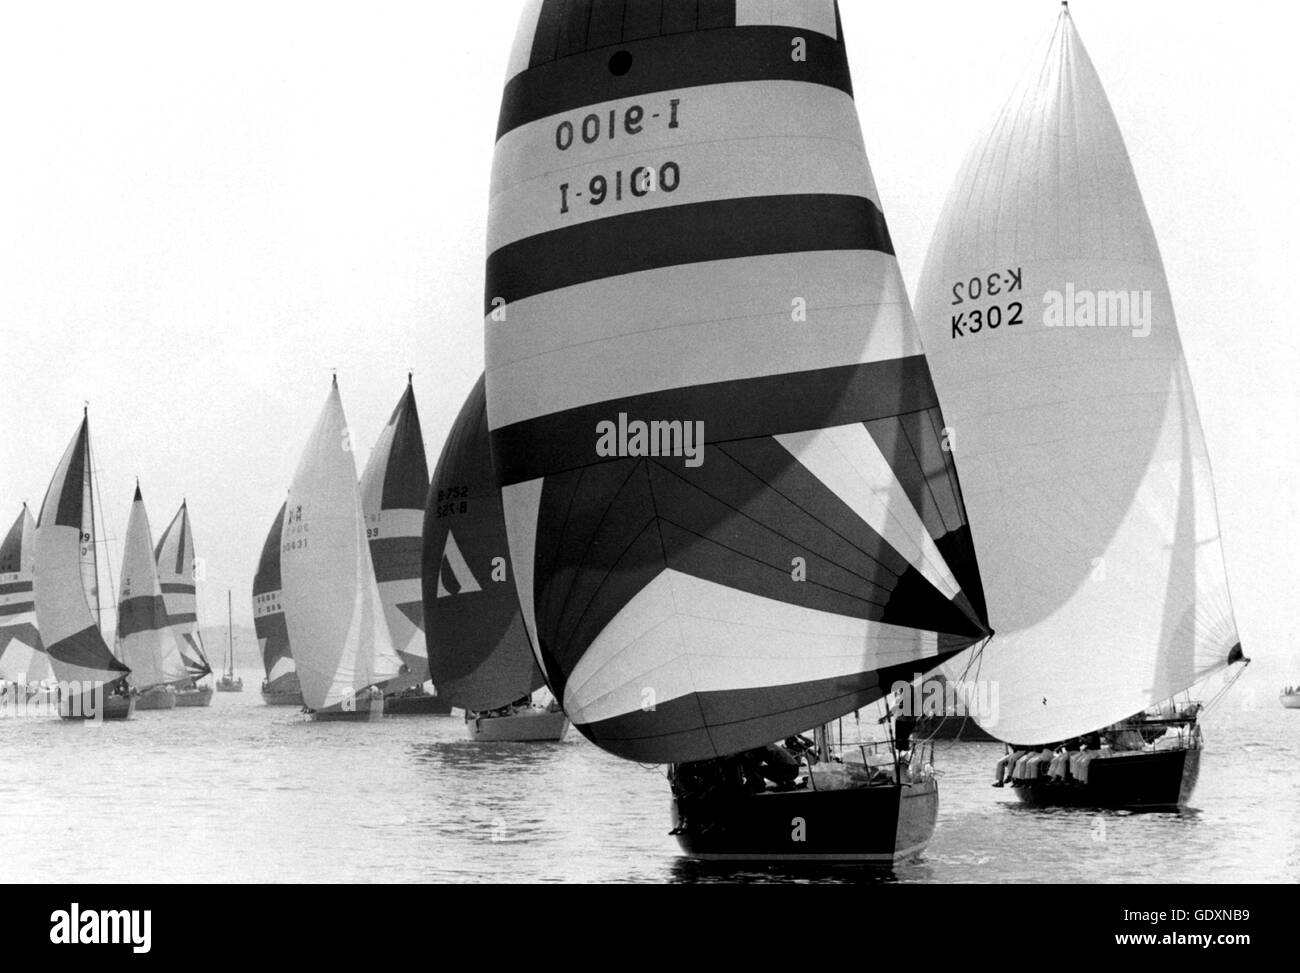 AJAXNETPHOTO. 1981. SOLENT, ENGLAND. - ADMIRAL'S CUP - FLEET JOSTLE IN LIGHT AIRS DURING AN INSHORE RACE. PHOTO:JONATHAN - Stock Image